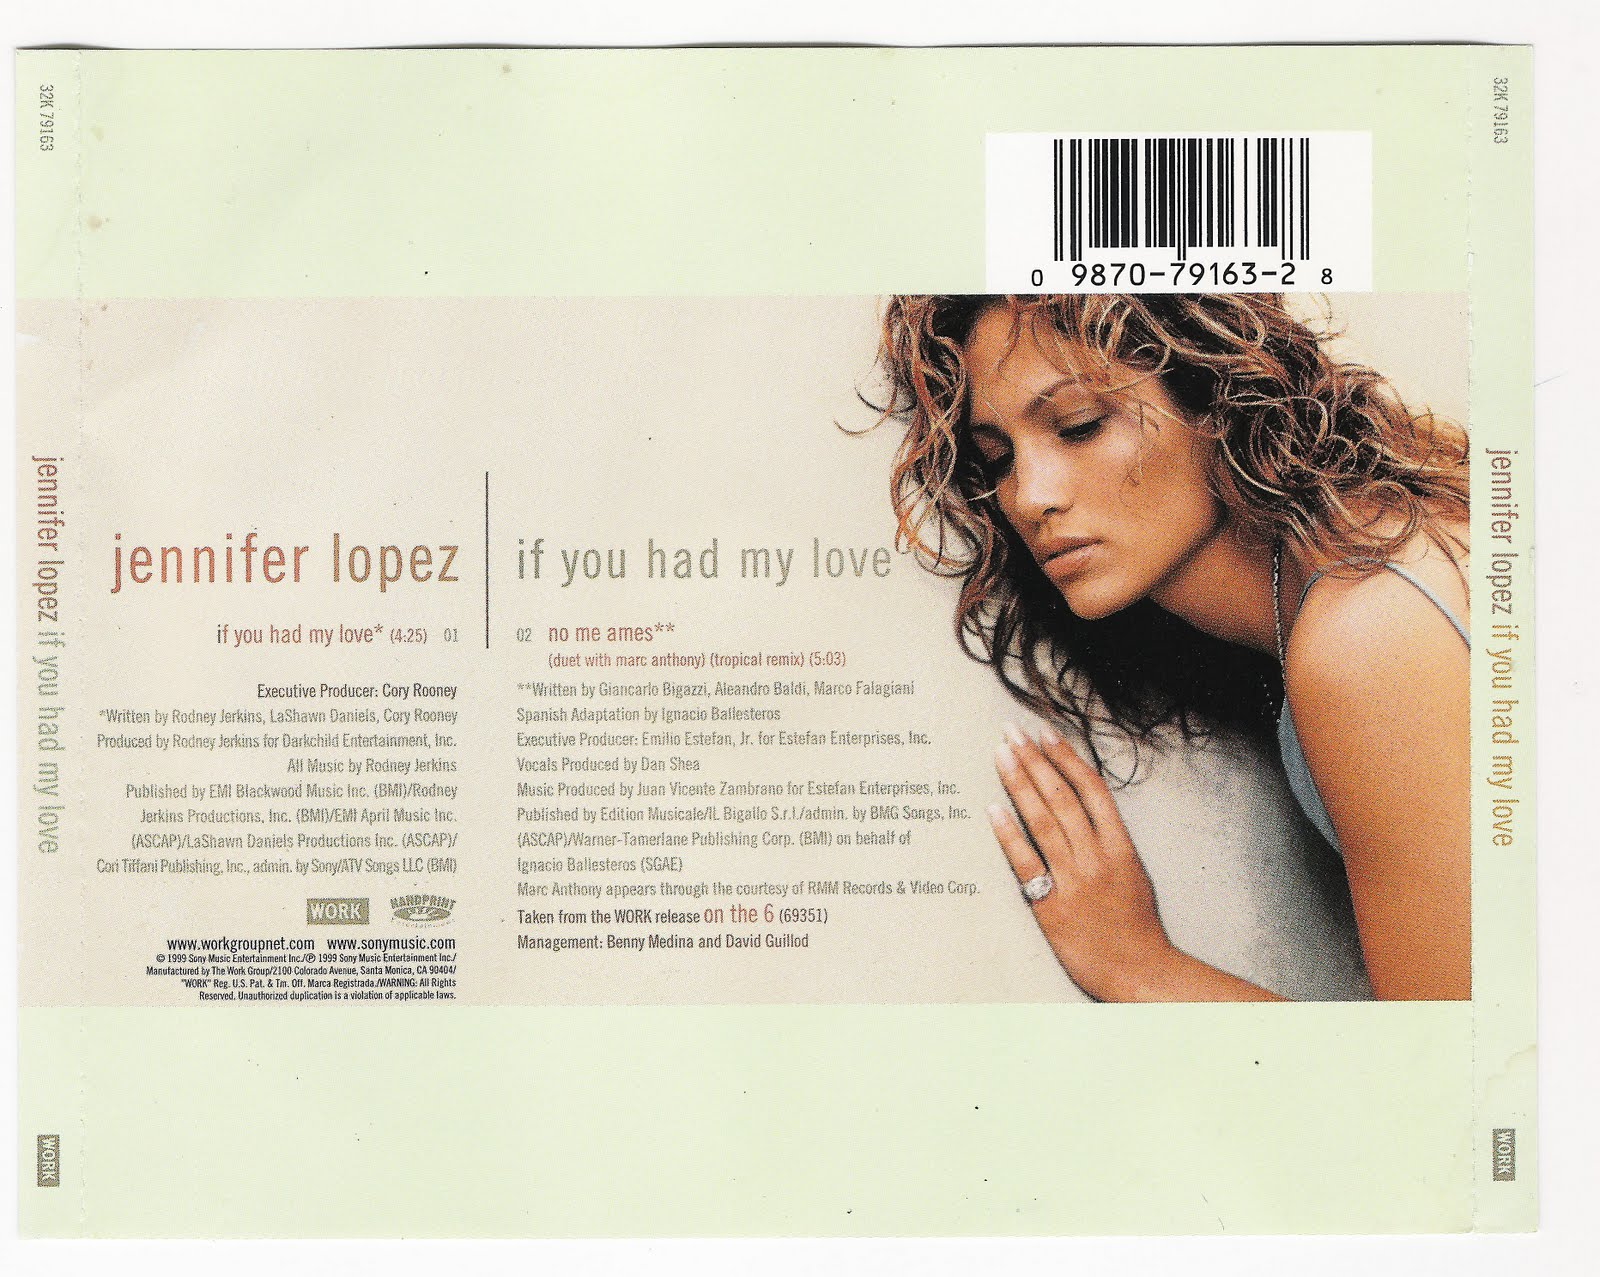 http://4.bp.blogspot.com/-glFoo1ugYhg/TgpWV5eUBcI/AAAAAAAAKsQ/NB_WFM2BaOk/s1600/00-jennifer_lopez-if_you_had_my_love-%2528cds%2529-1999-back.jpg